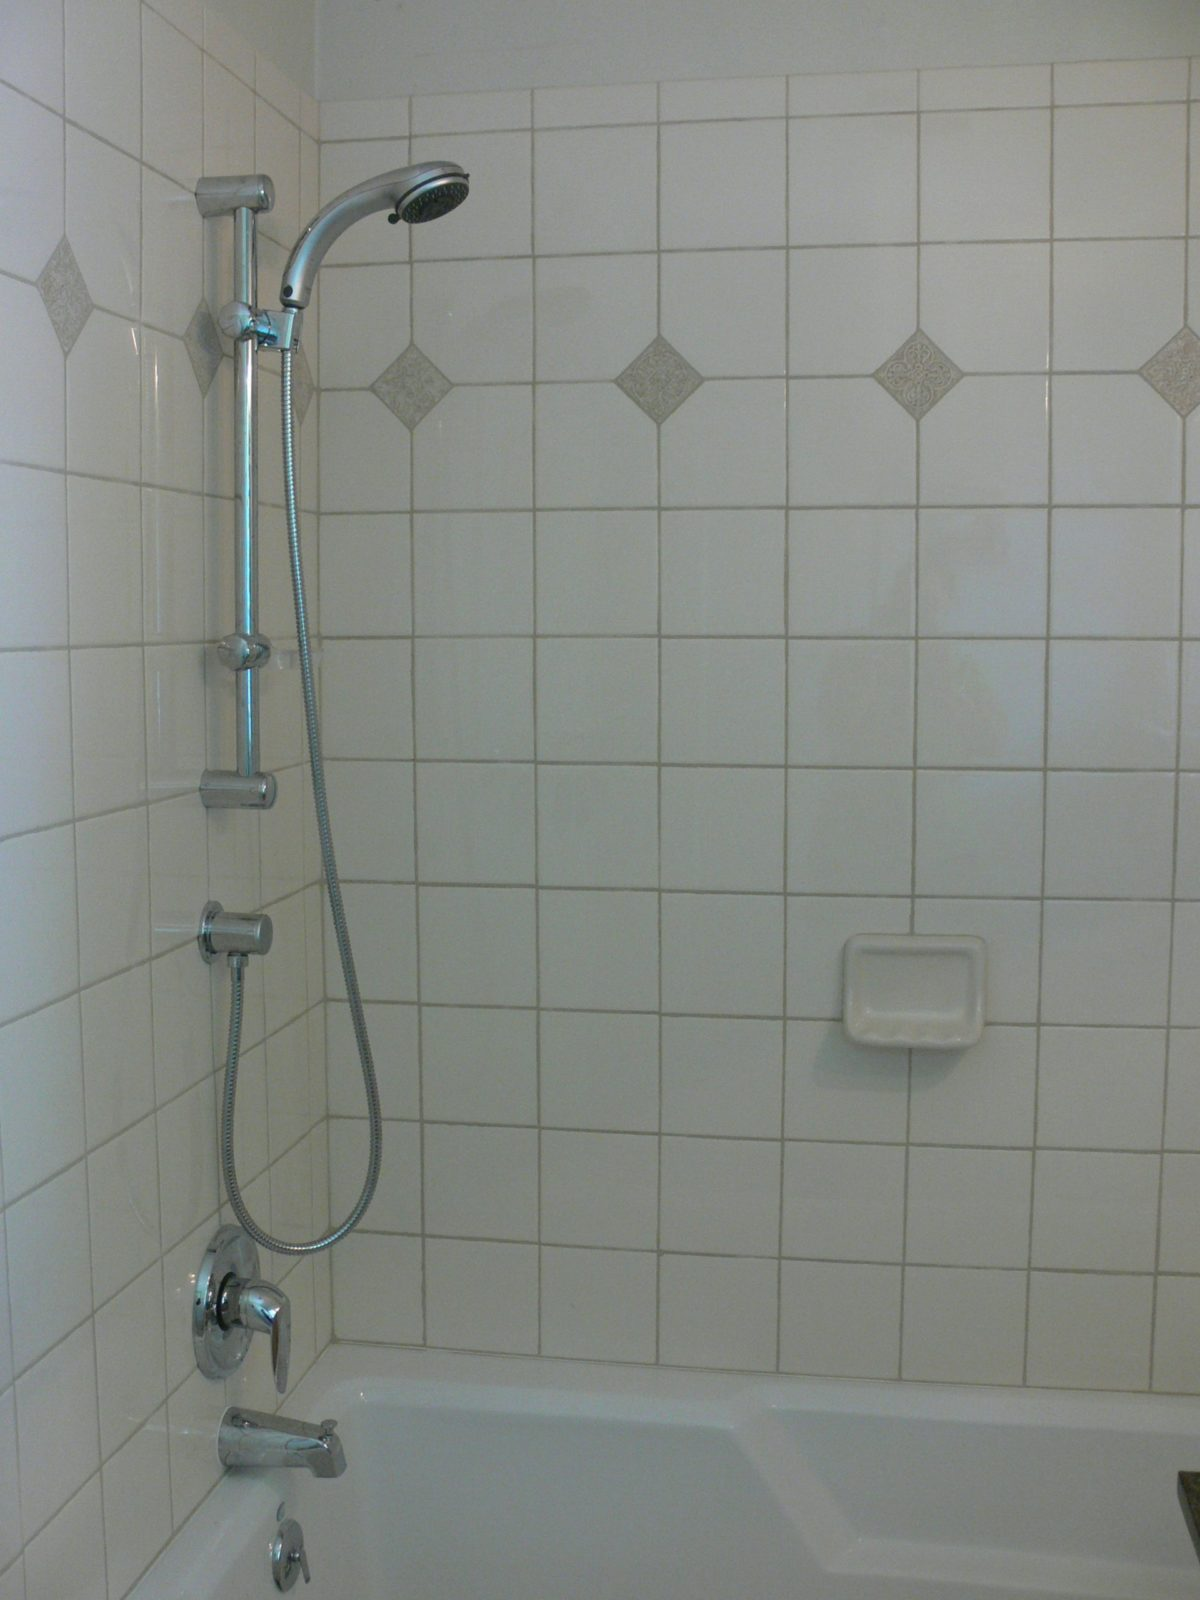 the grout medic shower